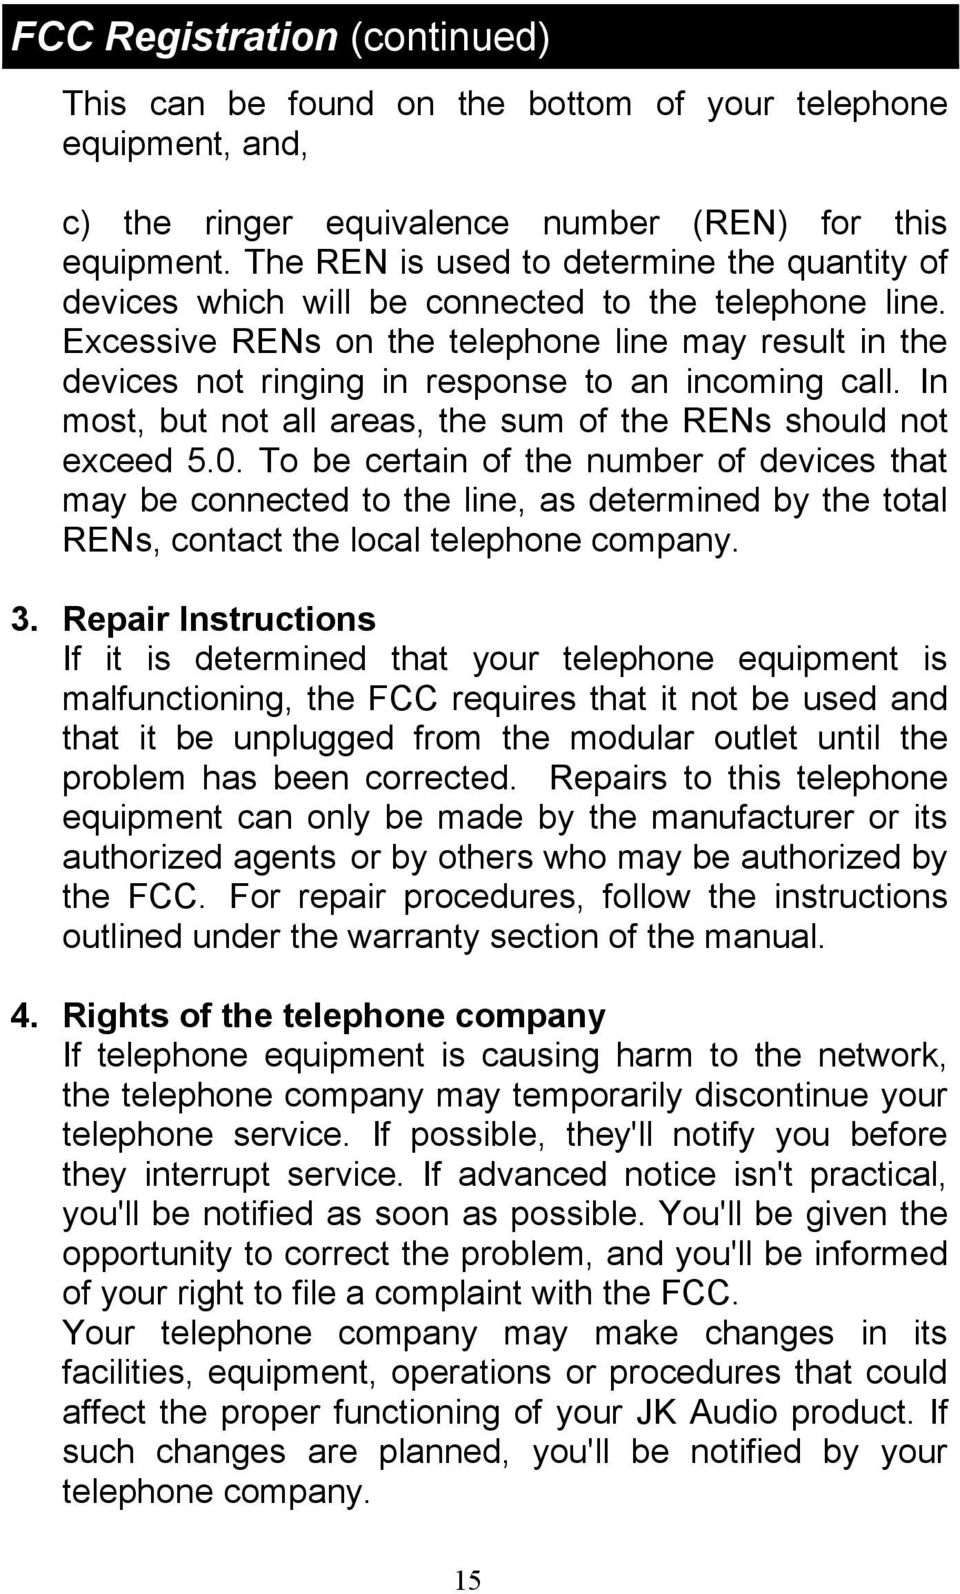 Excessive RENs on the telephone line may result in the devices not ringing in response to an incoming call. In most, but not all areas, the sum of the RENs should not exceed 5.0.